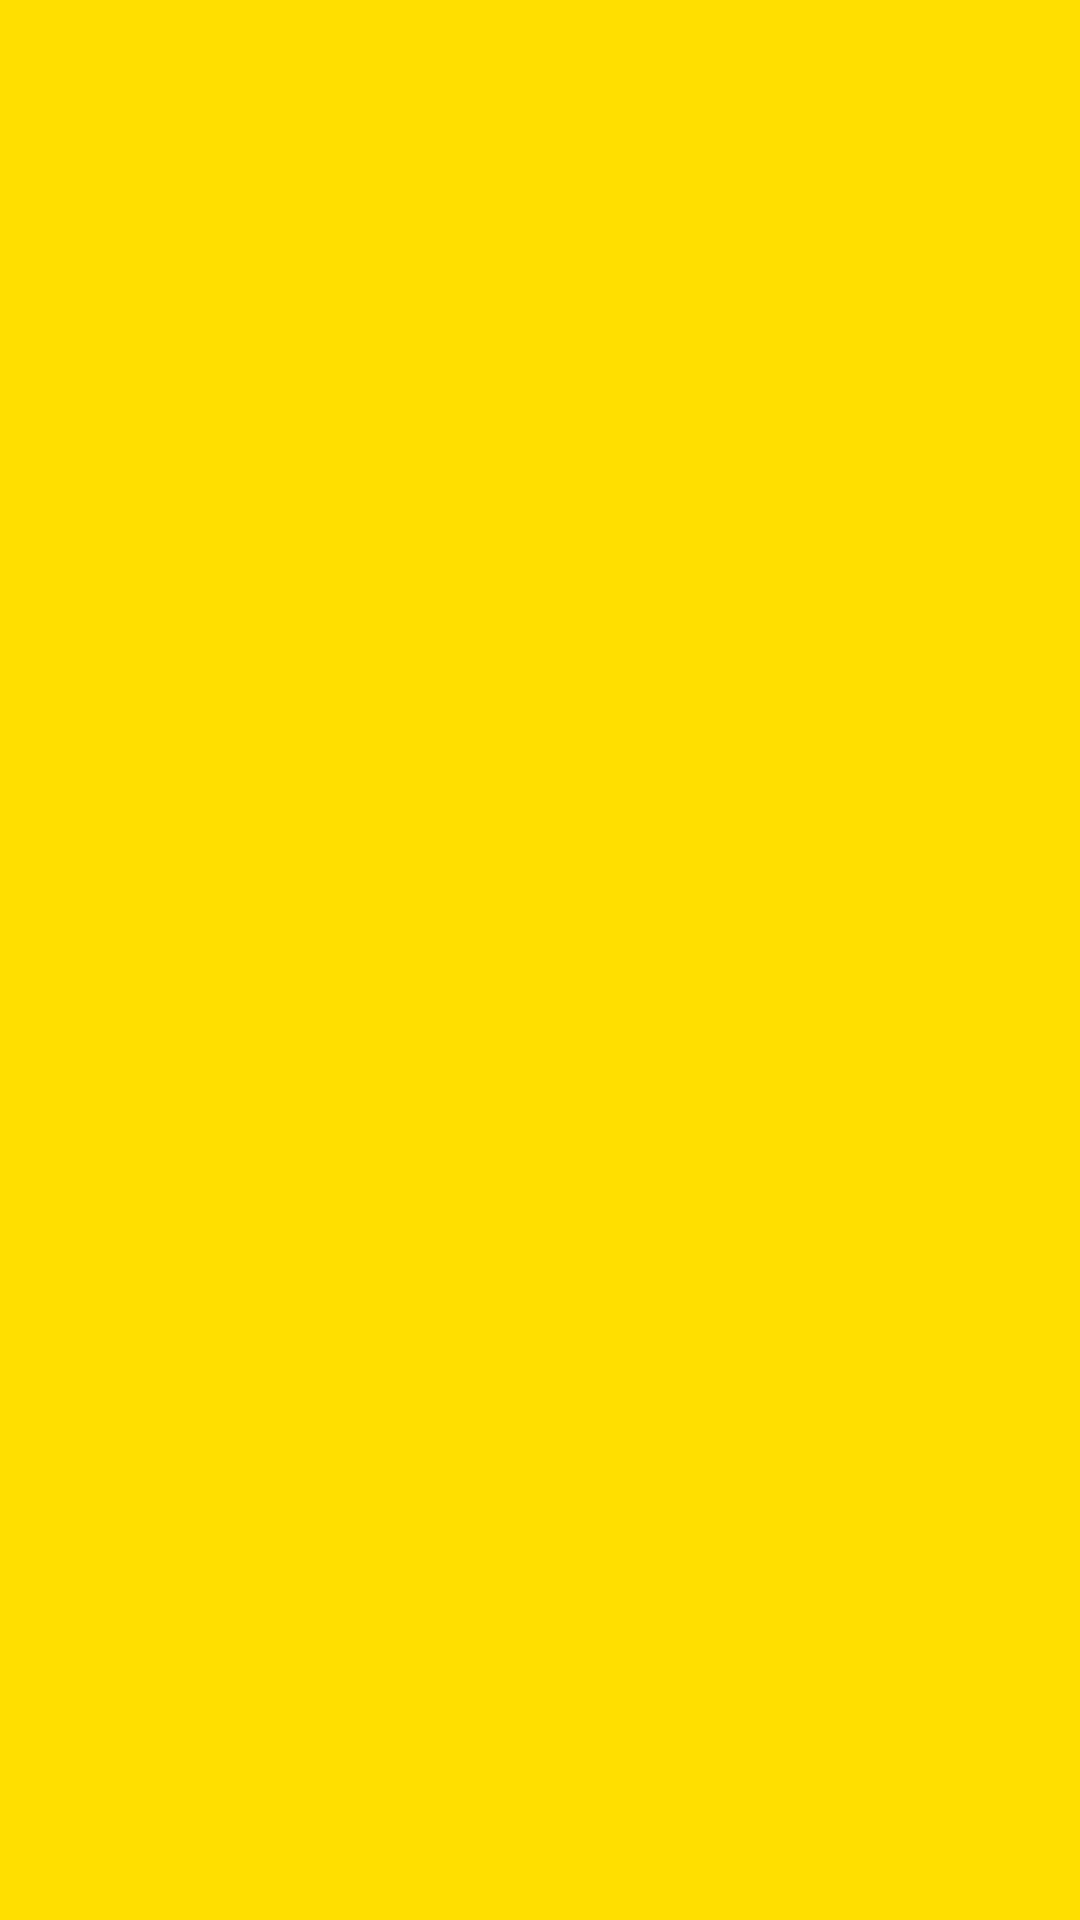 1080x1920 Yellow Pantone Solid Color Background